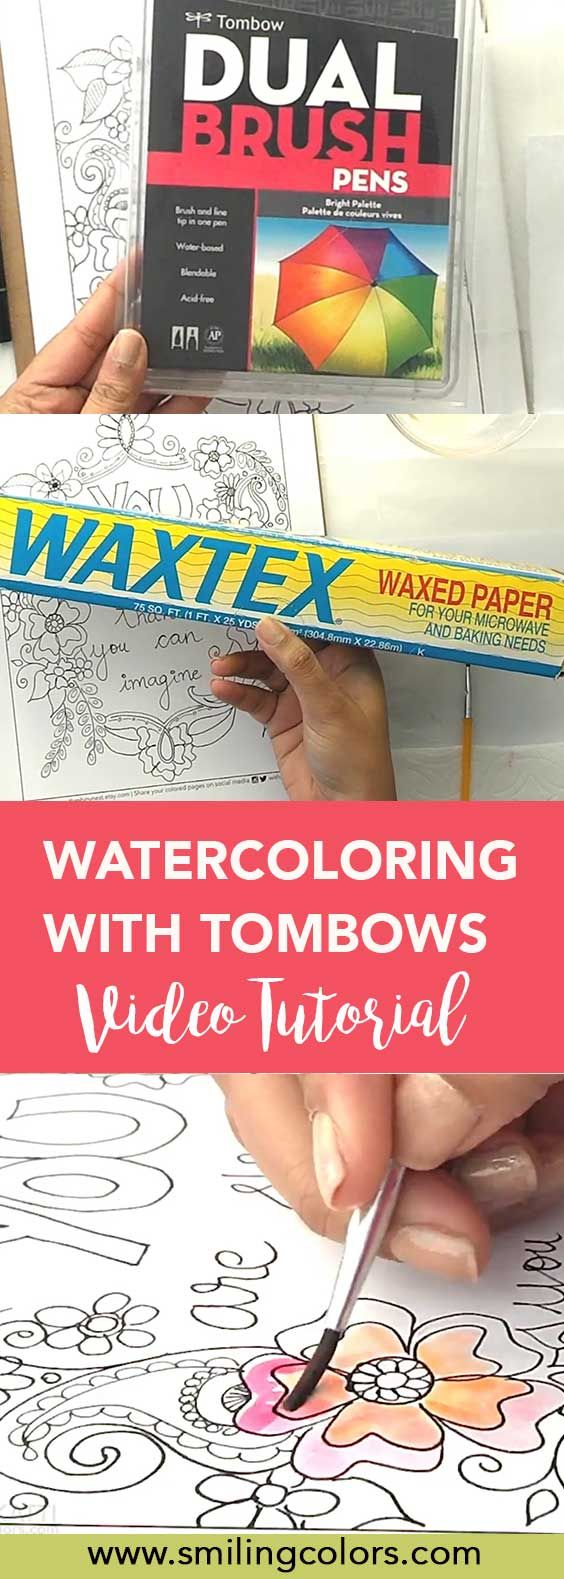 Wax paper as palette for watercoloring using markers